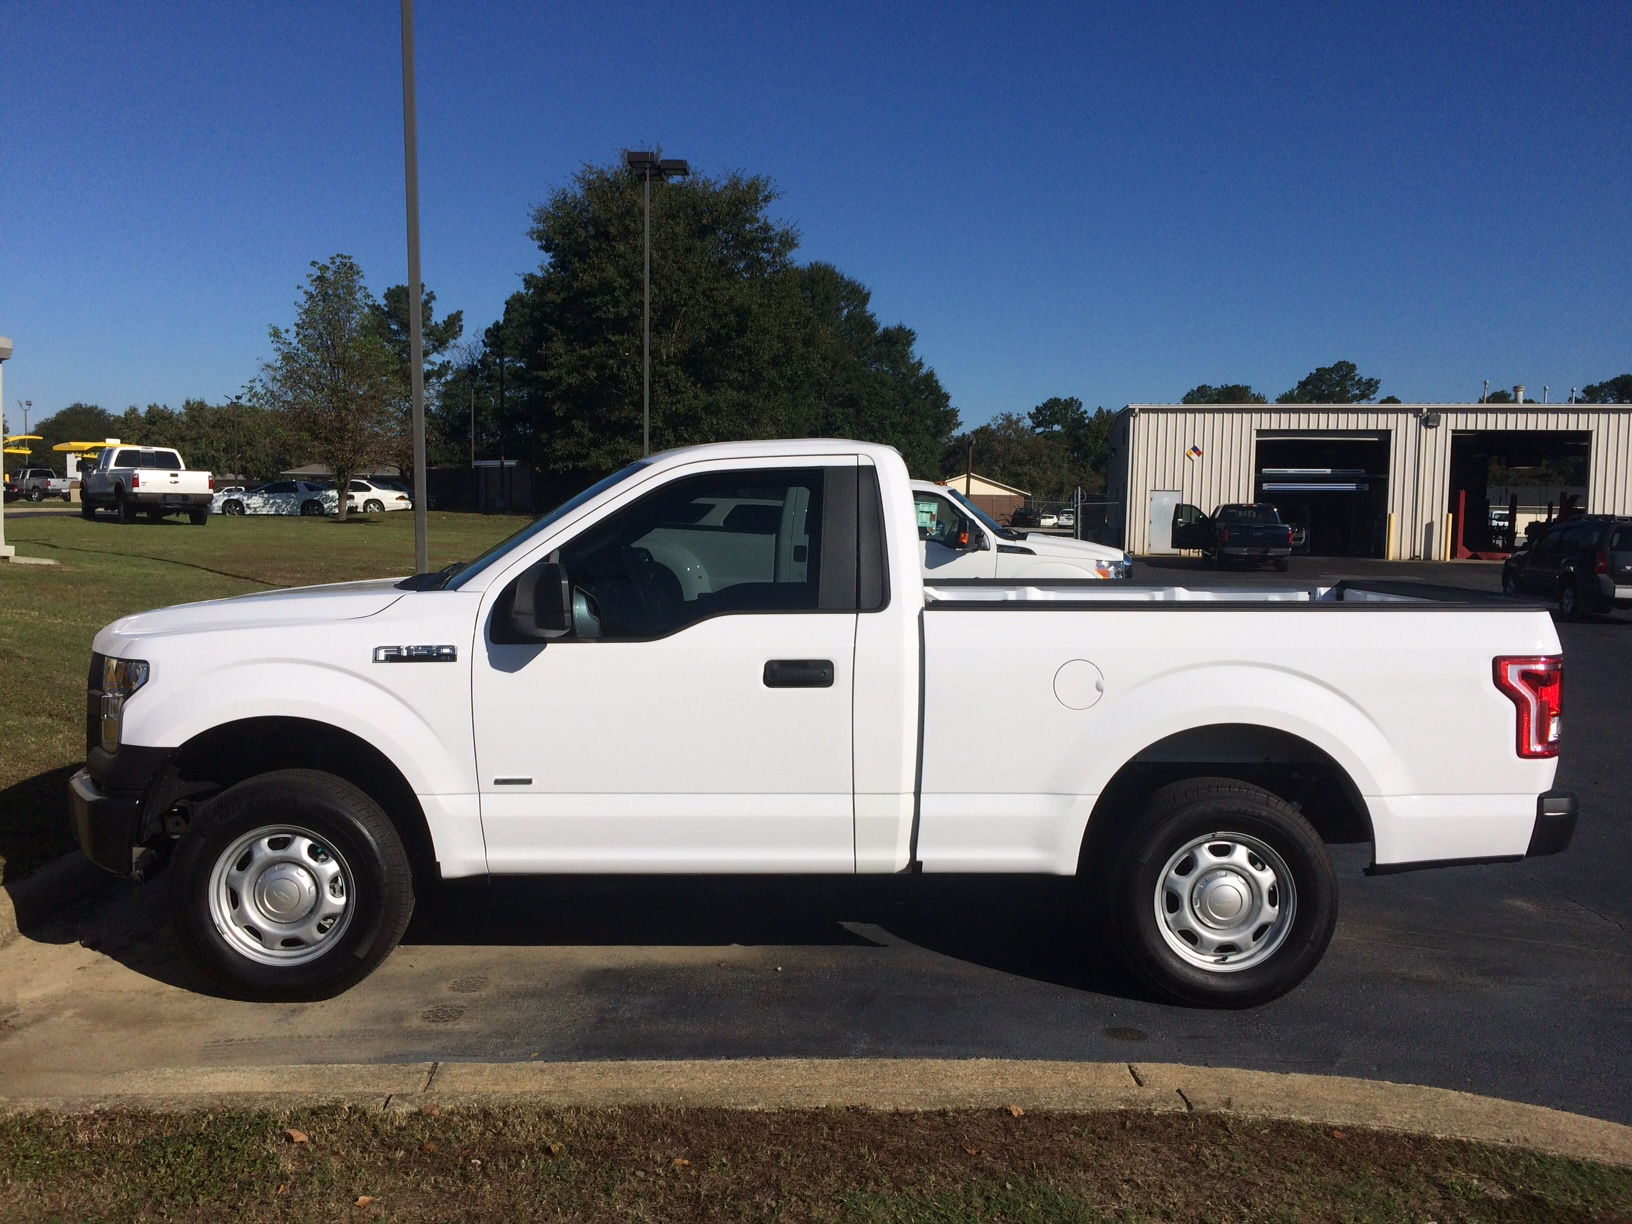 Tow Truck Houston >> Anyone here ever order just the basic XL regular cab/short bed truck? - Page 7 - Ford F150 Forum ...